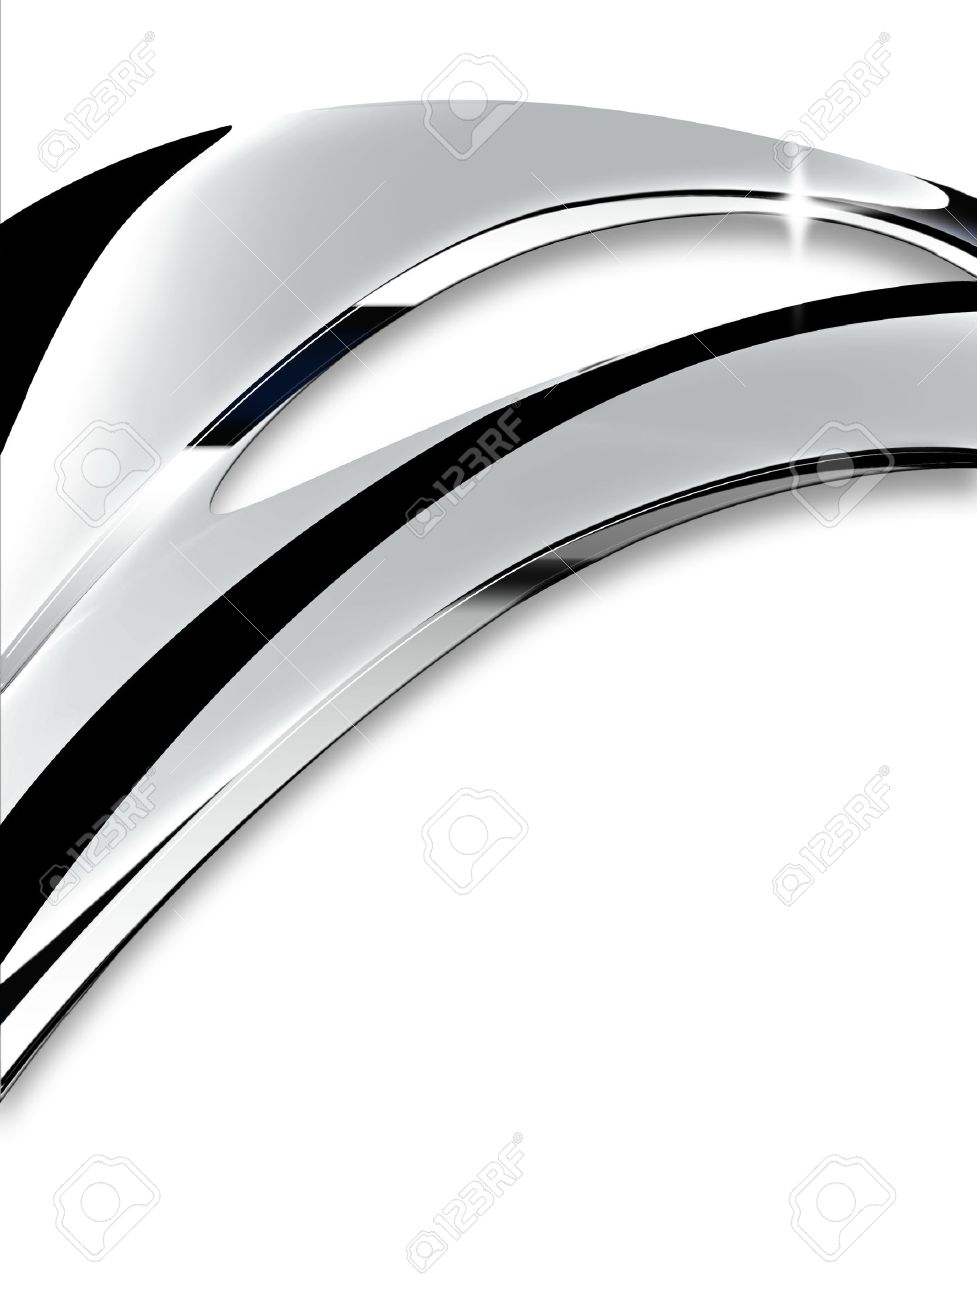 Wave of chrome on a white background Stock Photo - 16176685